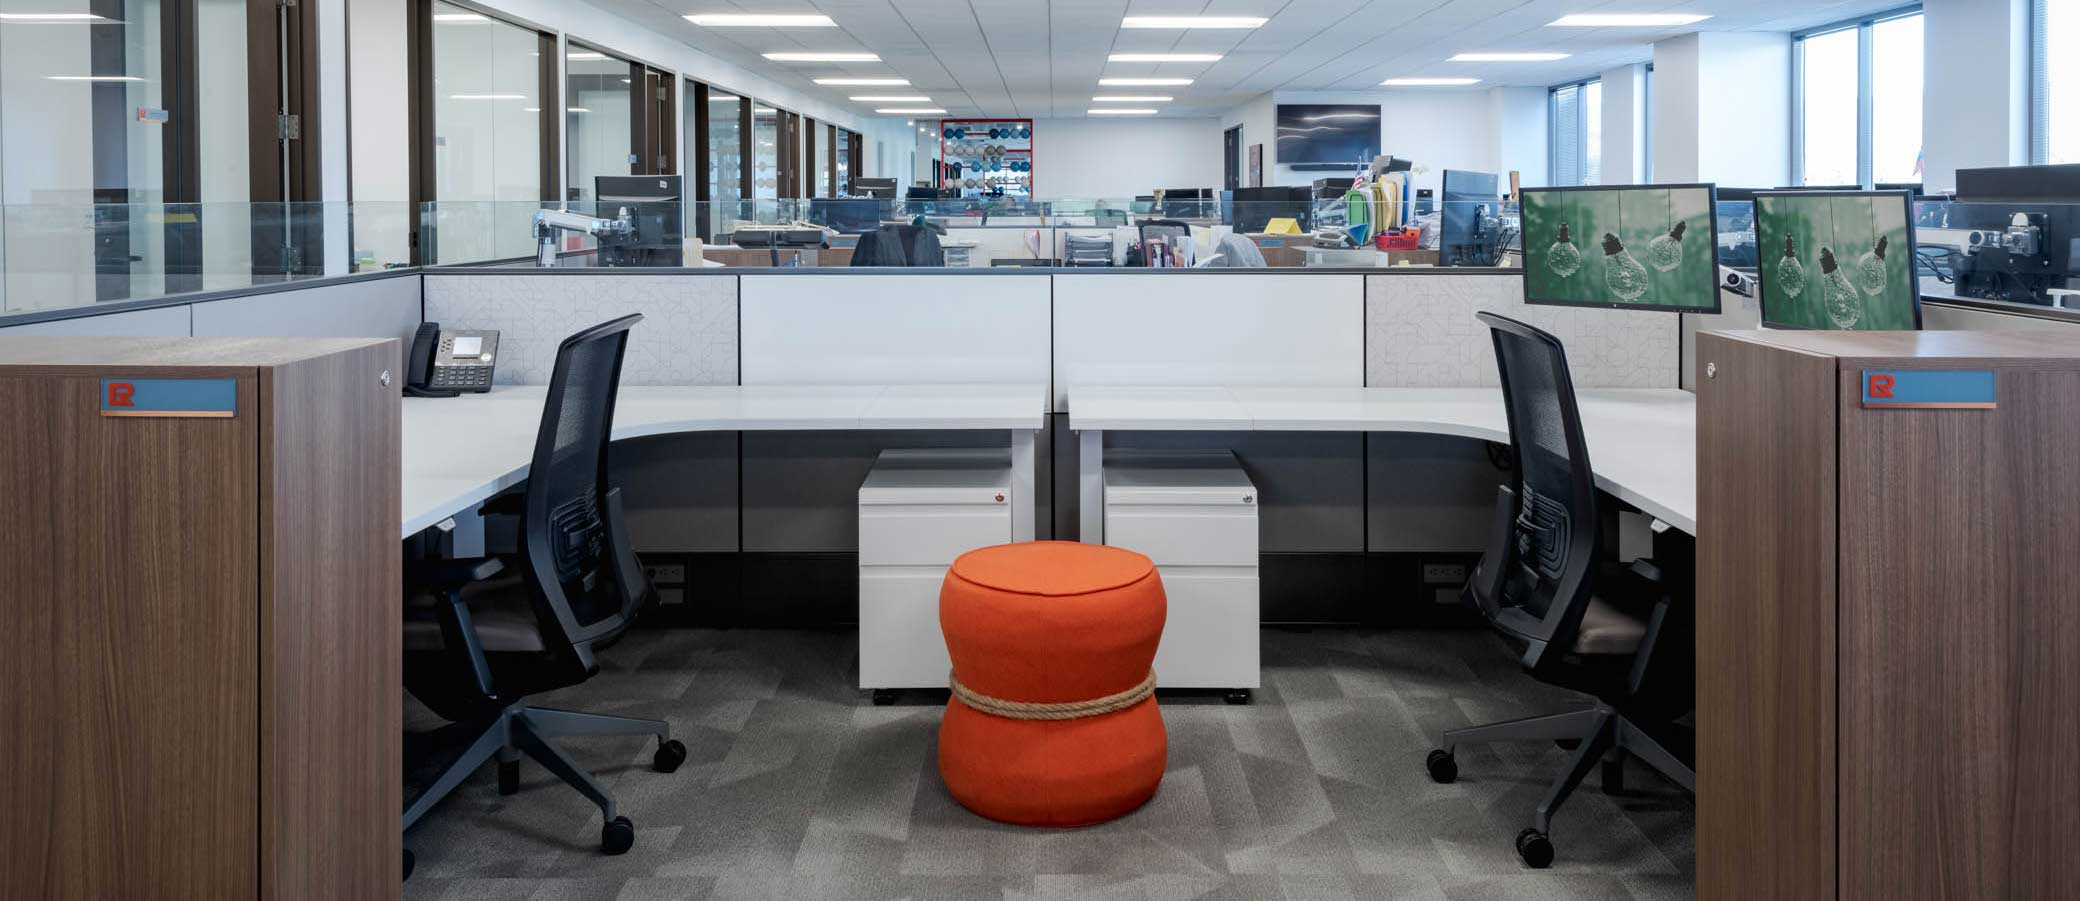 Electro Rent office furniture strategy promotes ergonomics